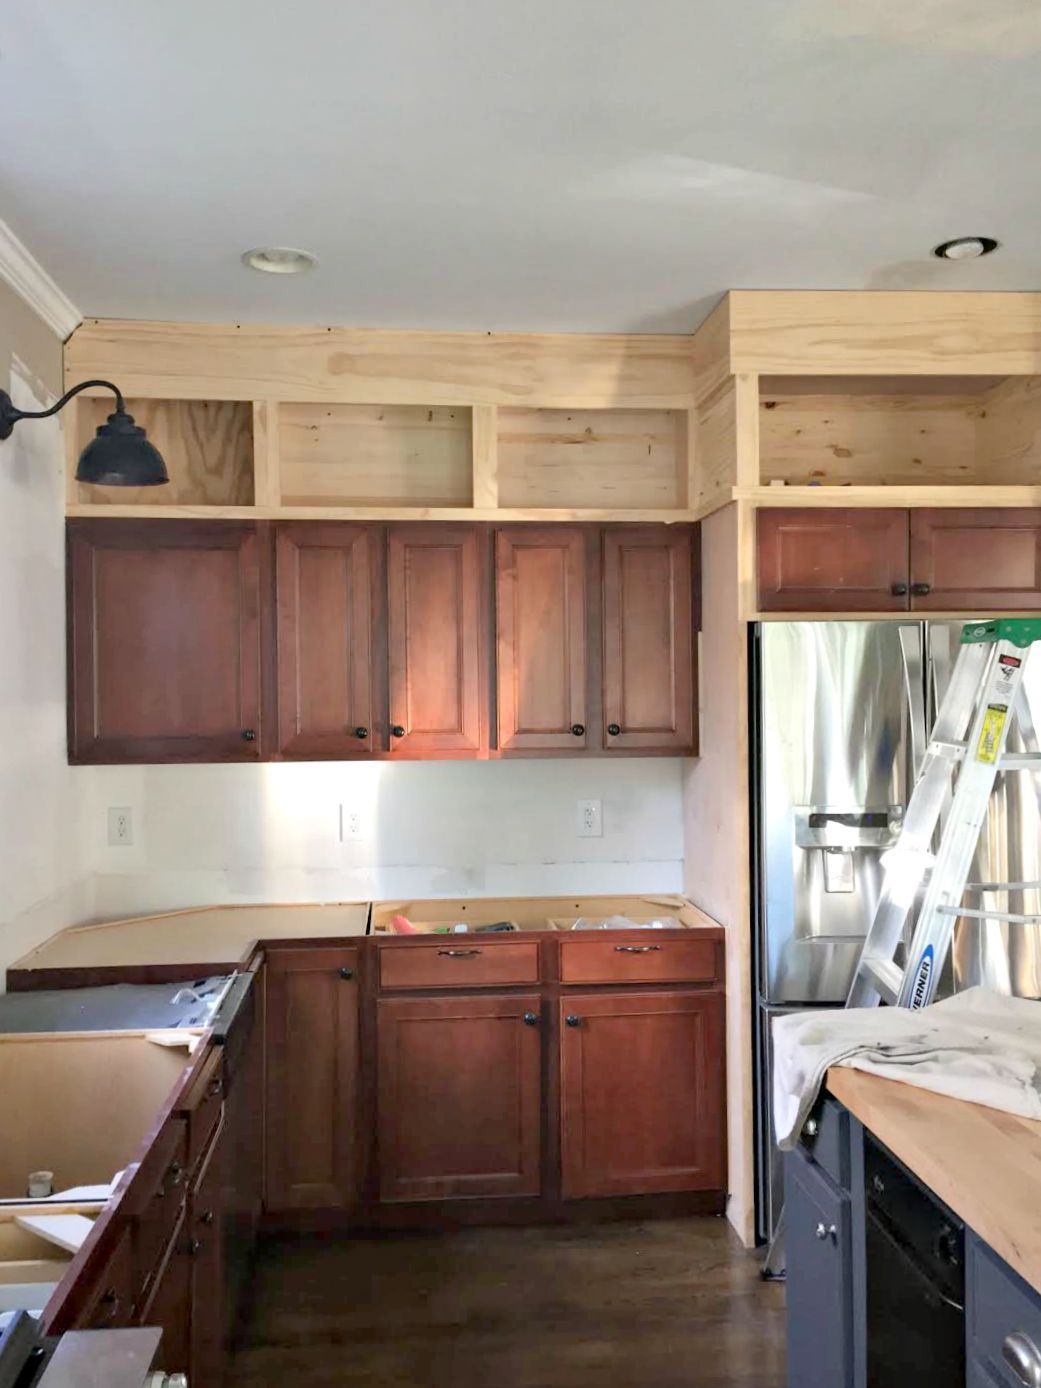 Kitchen Cabinets To The Ceiling Prepossessing Building Cabinets Up To The Ceiling  Building Kitchen Cabinets . Inspiration Design